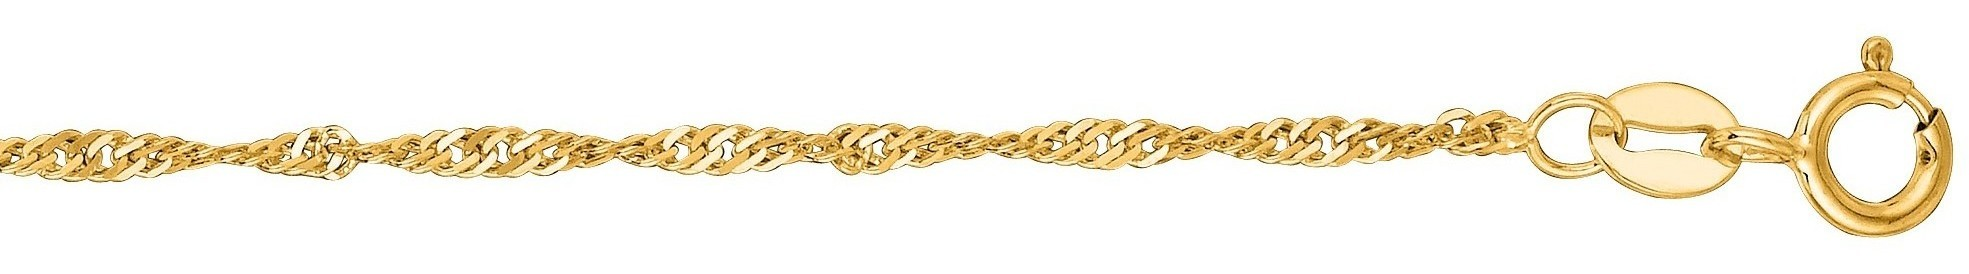 "24"" 10K Yellow Gold 1.5mm (0.06"") Polished Diamond Cut Singapore Chain w/ Spring Ring Clasp"